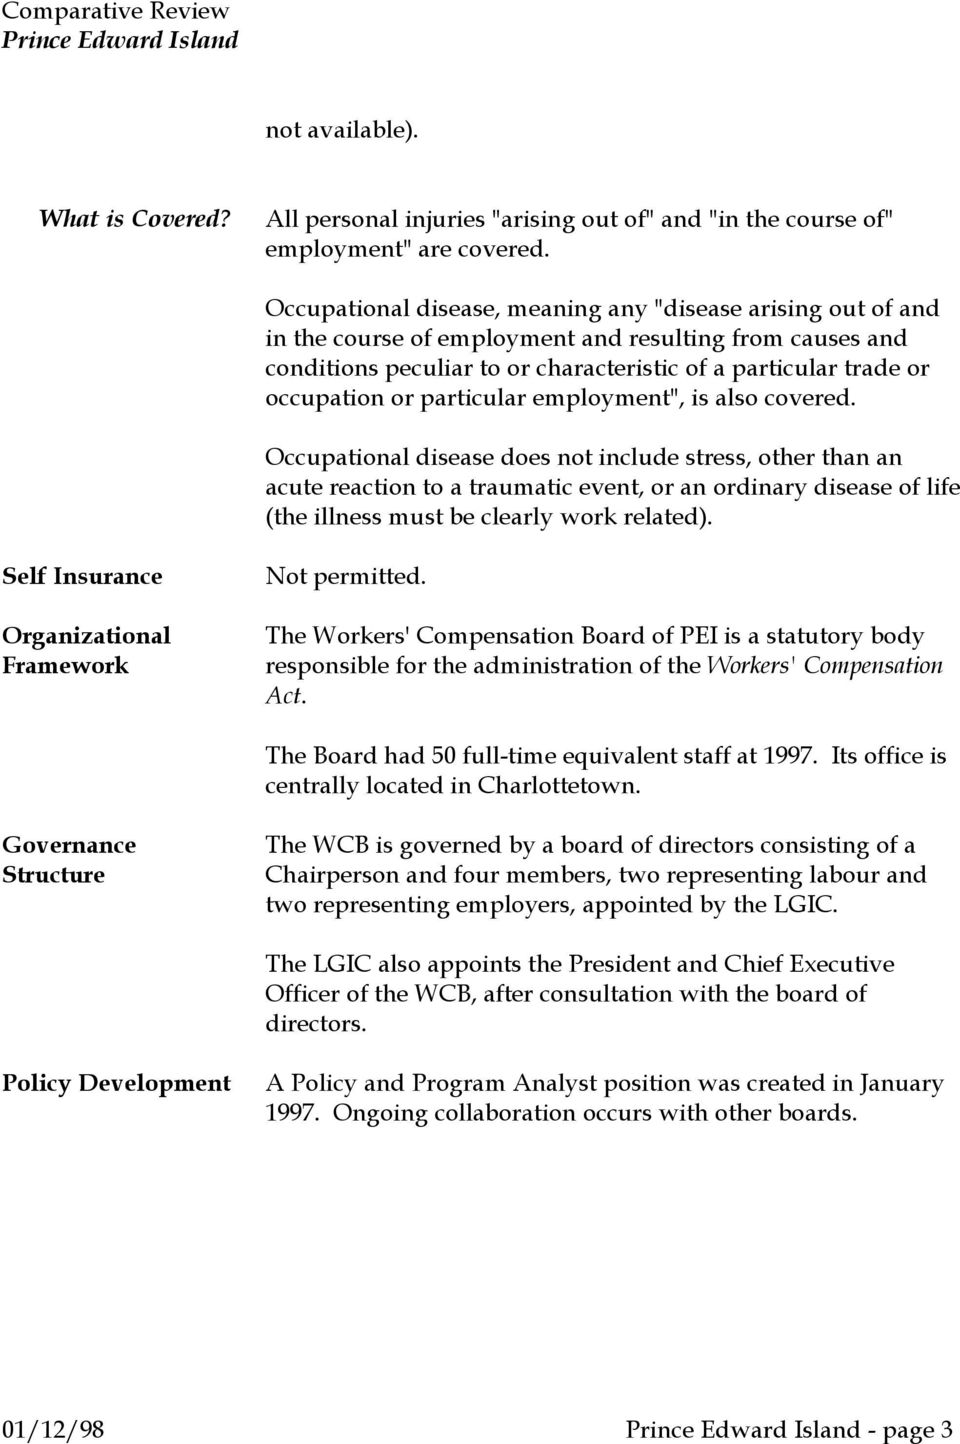 "particular employment"", is also covered."